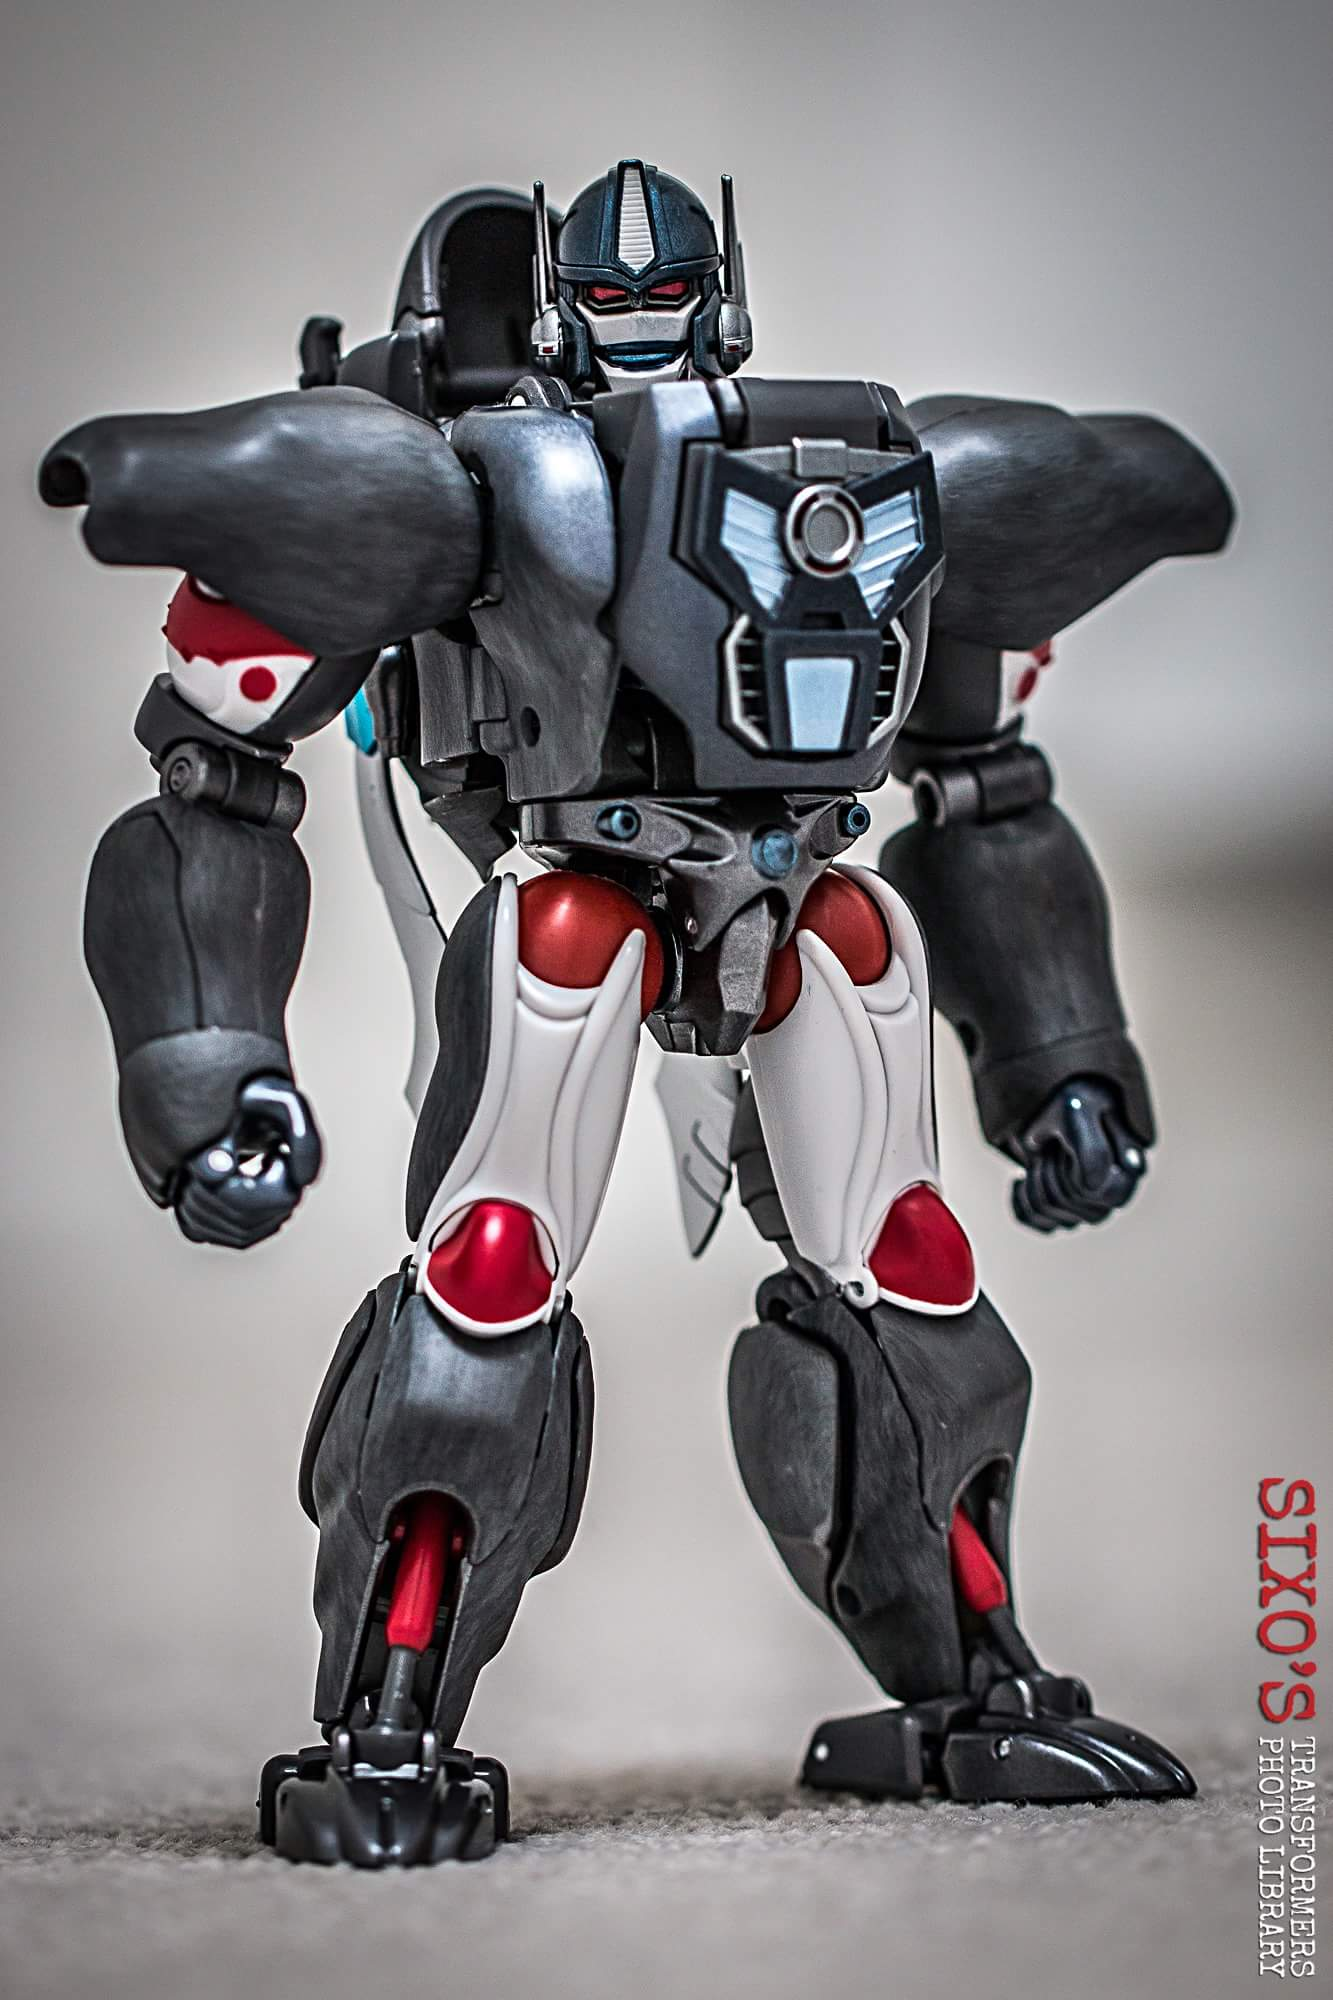 [Masterpiece] MP-32, MP-38 Optimus Primal et MP-38+ Burning Convoy (Beast Wars) - Page 3 NBvvvZ6y